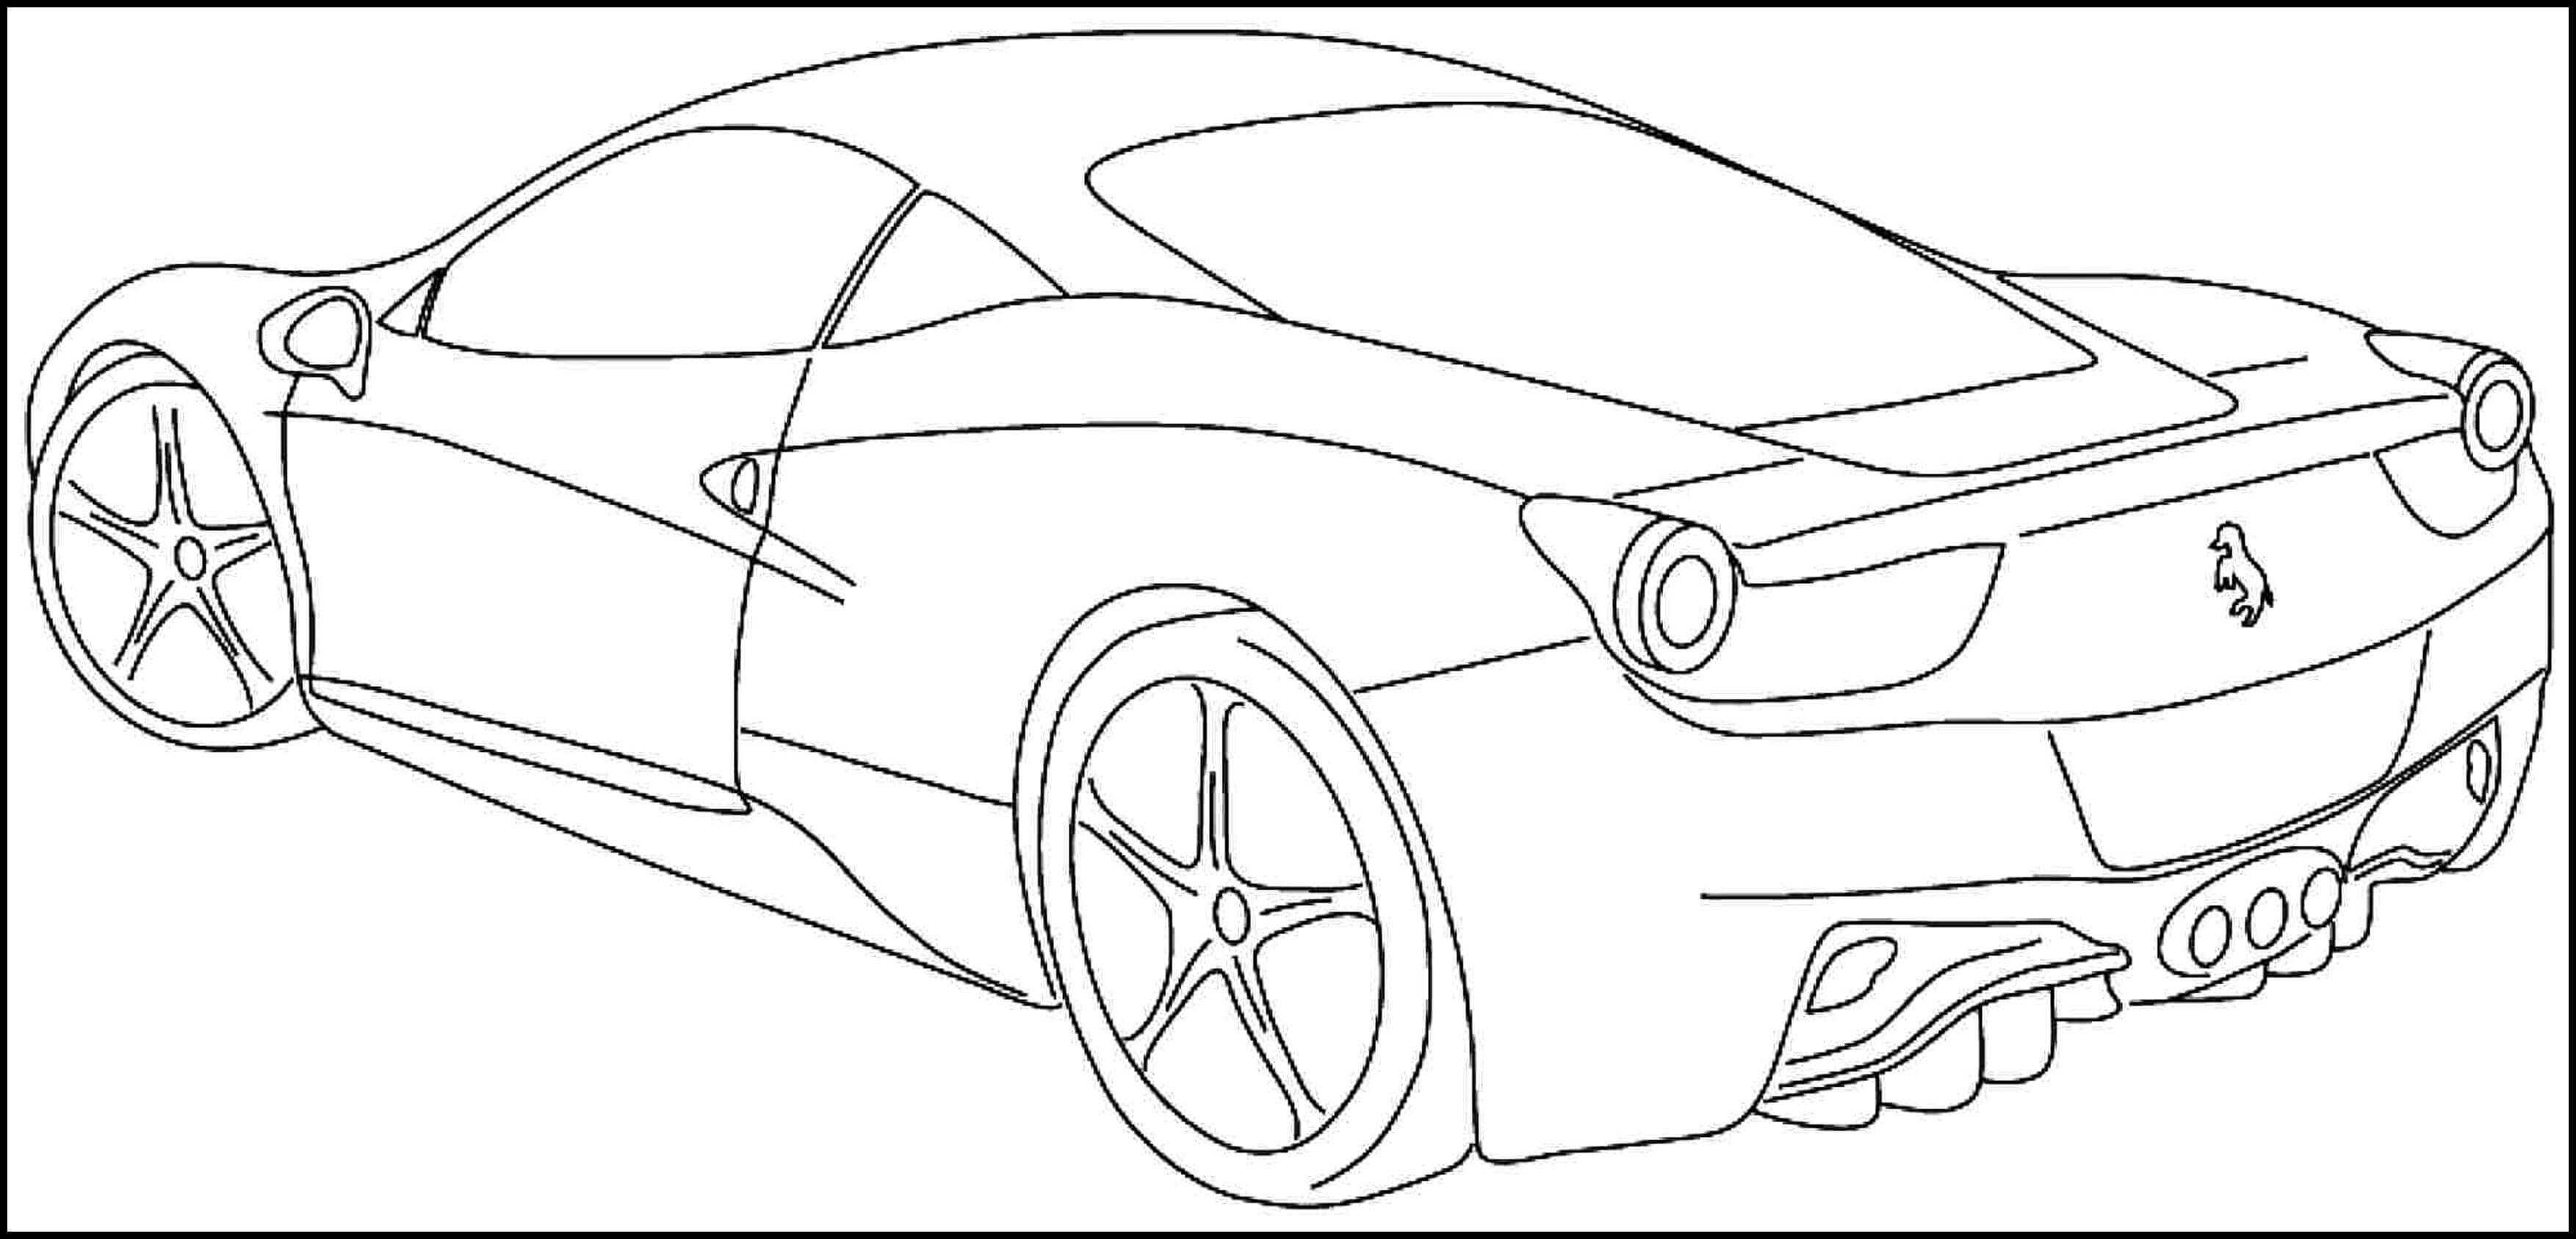 Printable sports car coloring pages for kids & teens Download or